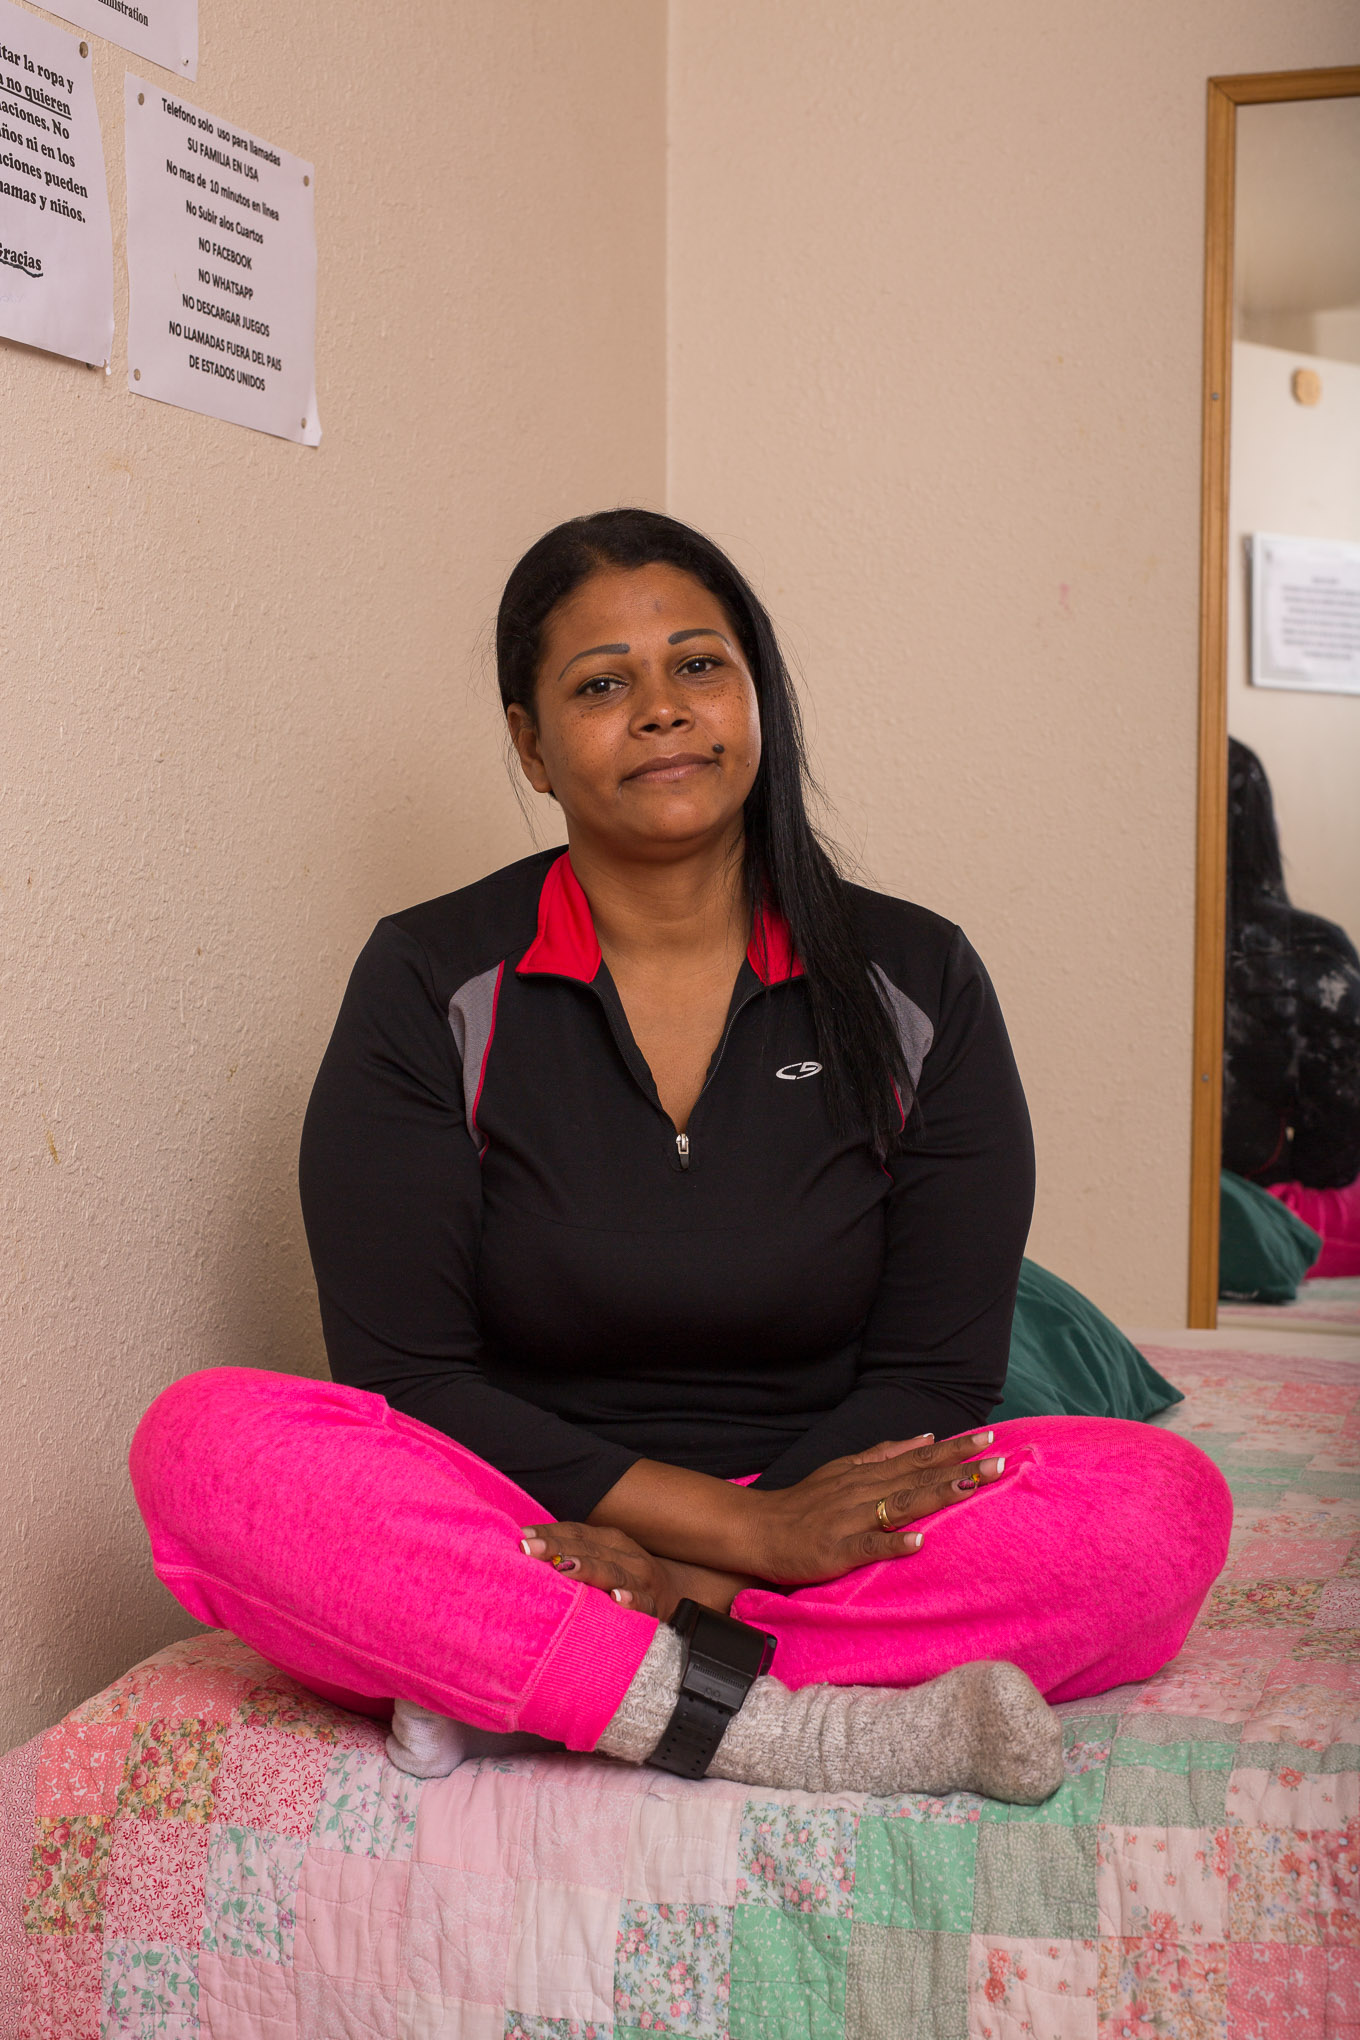 Maria Yanneth Lopez, 37, sits with her legs crossed on her temporary bed at Casa RAICES.